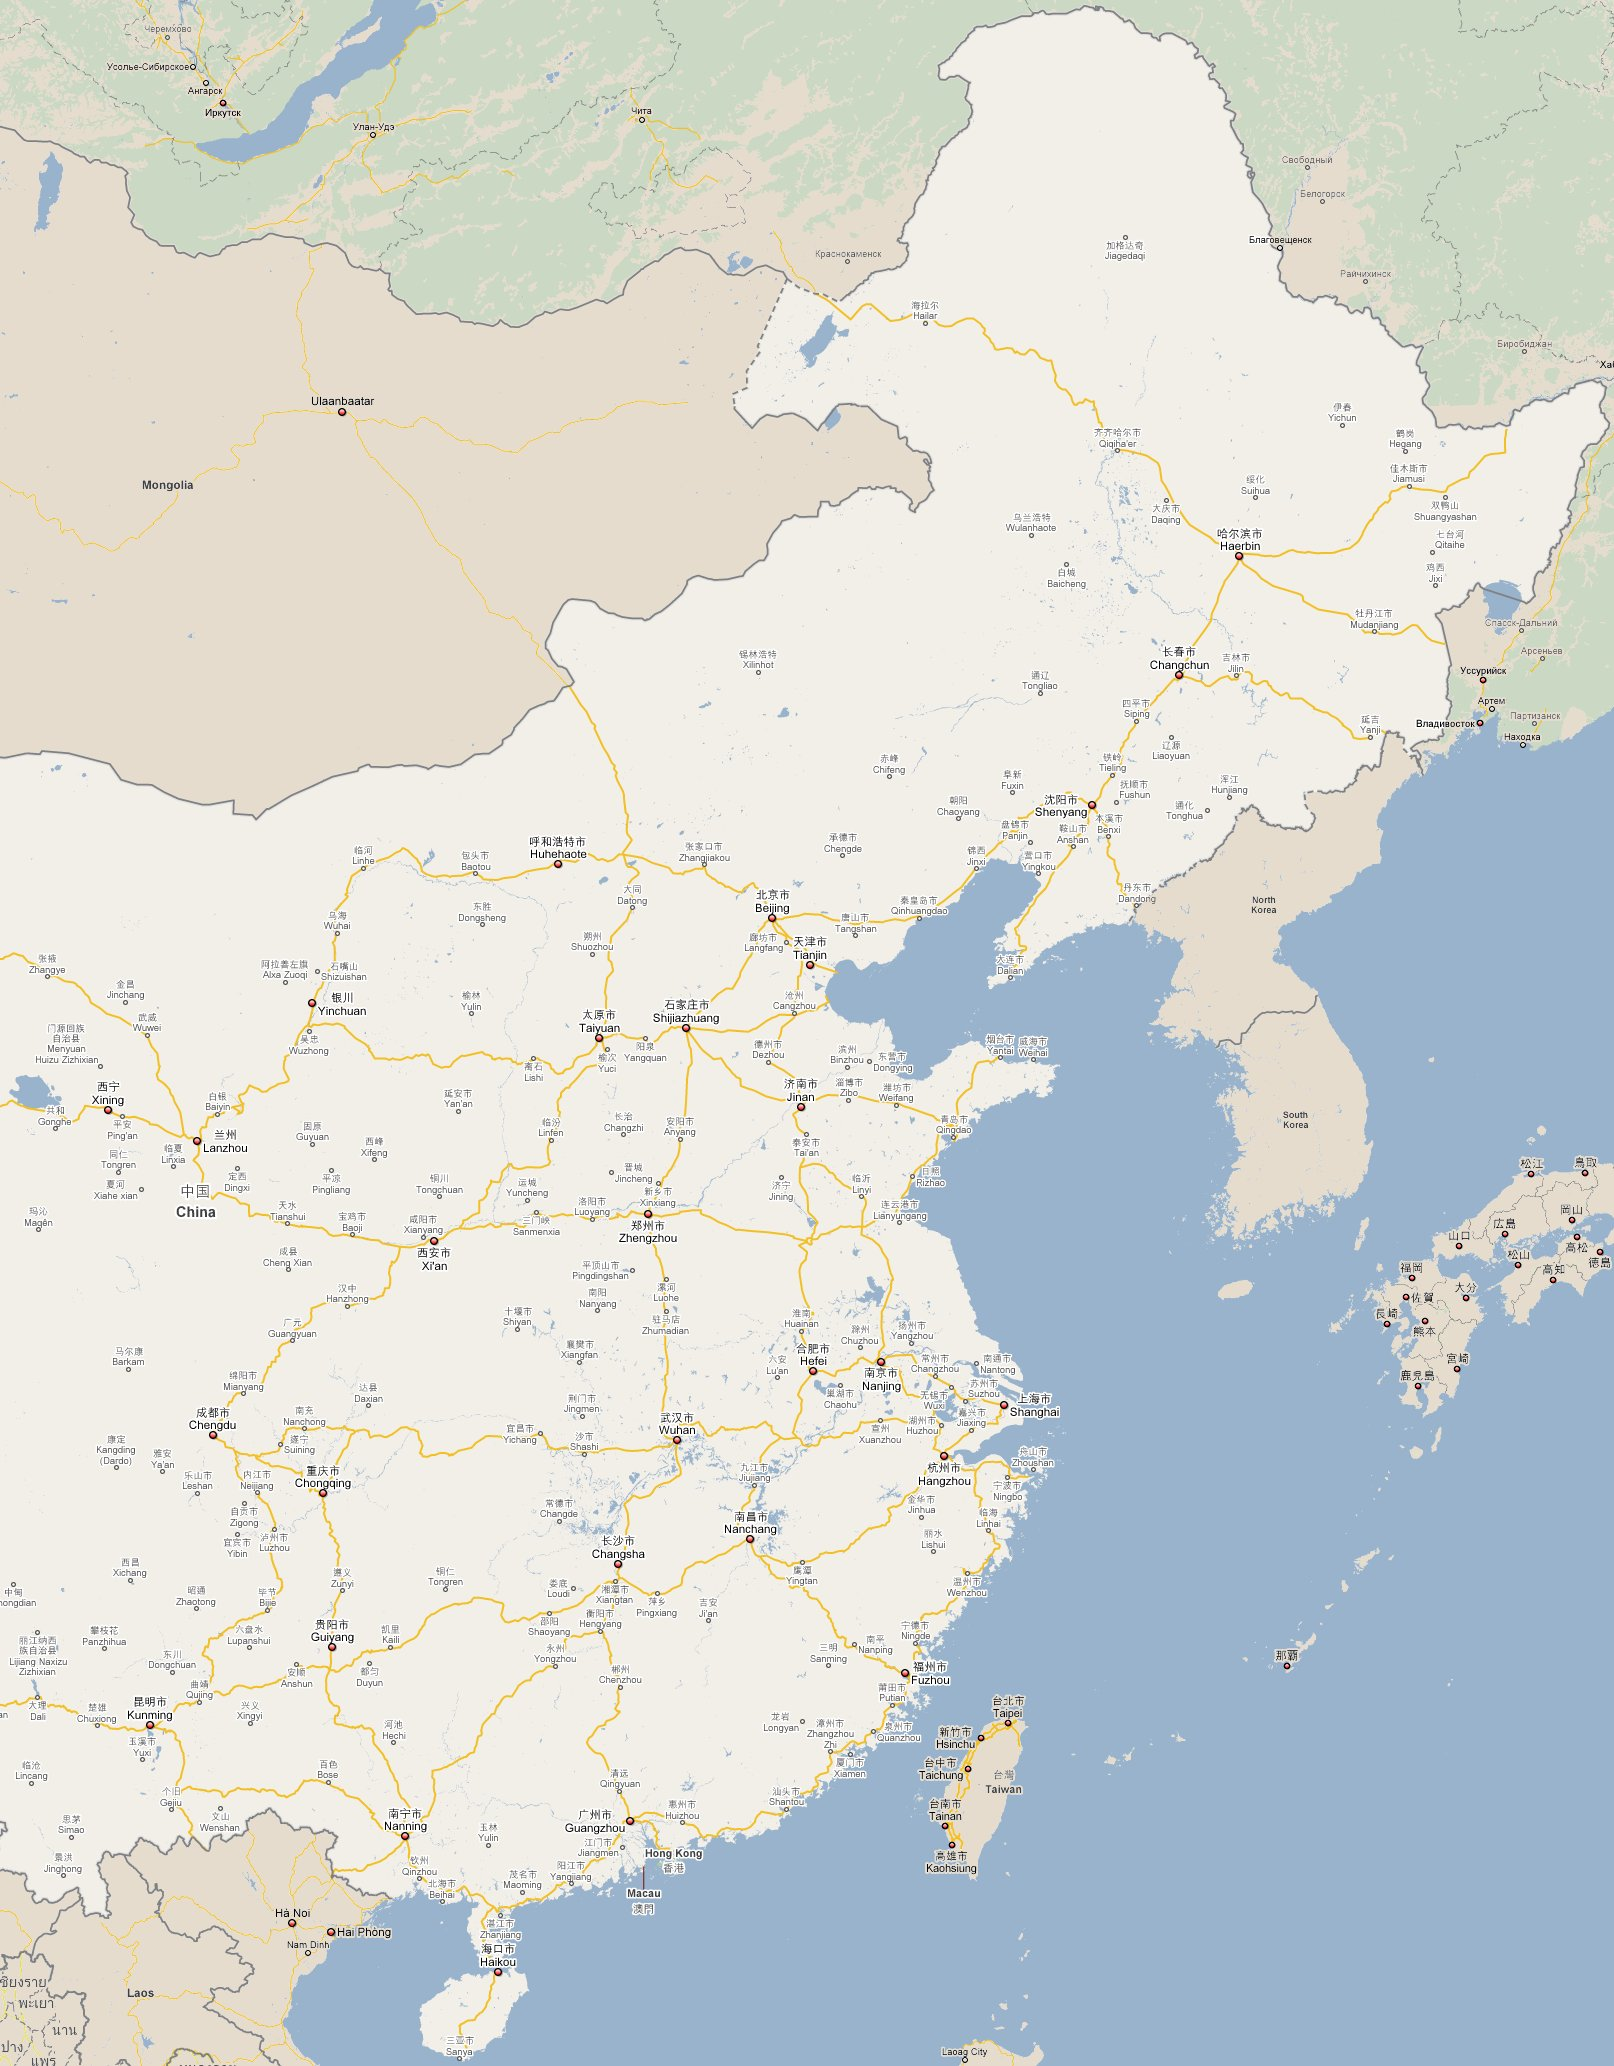 Footiemapcom China Map Of Top Tier Chinese Football - Changchun map